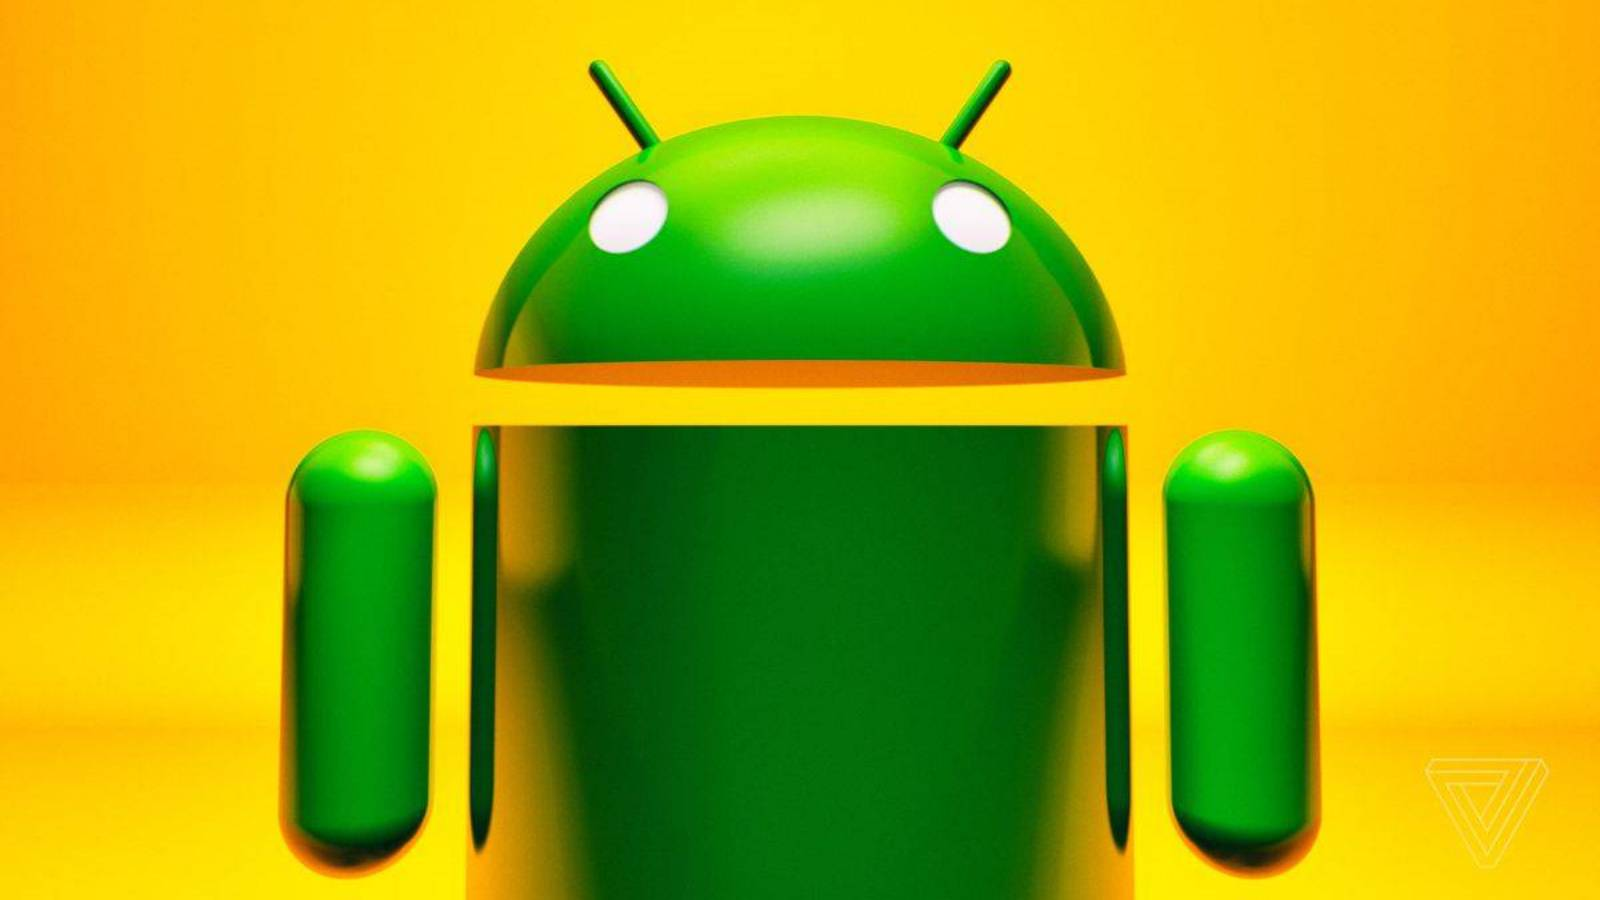 Telefoanele Android camere